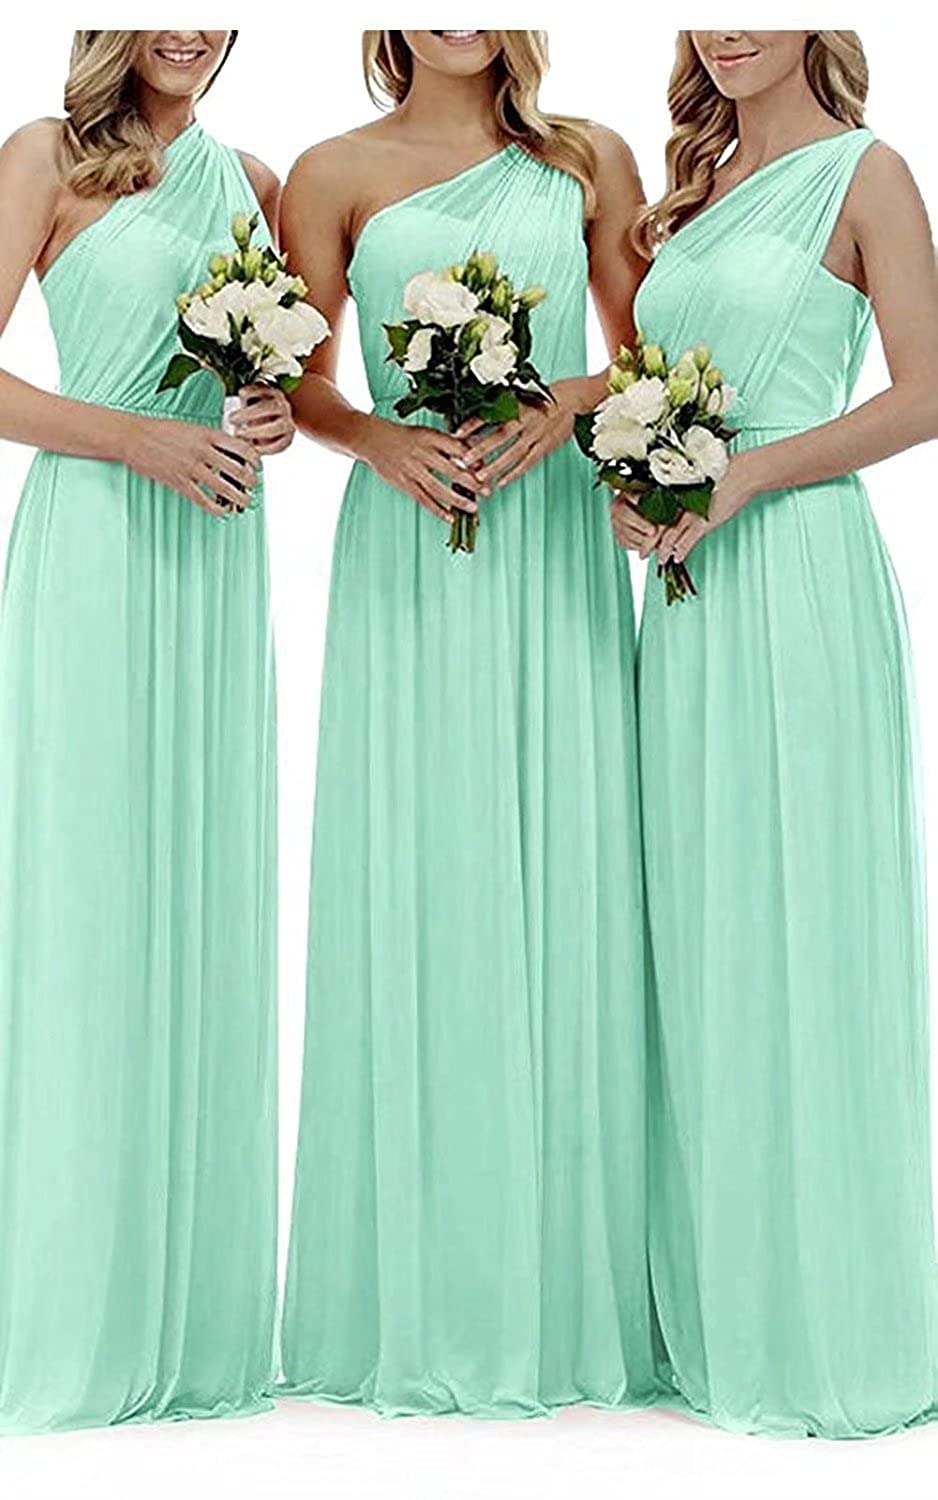 e31c934901fa FNKS CRAFT One Shoulder Bridesmaids Dresses Pleated Chiffon Maid of Honor  Dress Wedding Guest Dress at Amazon Women s Clothing store